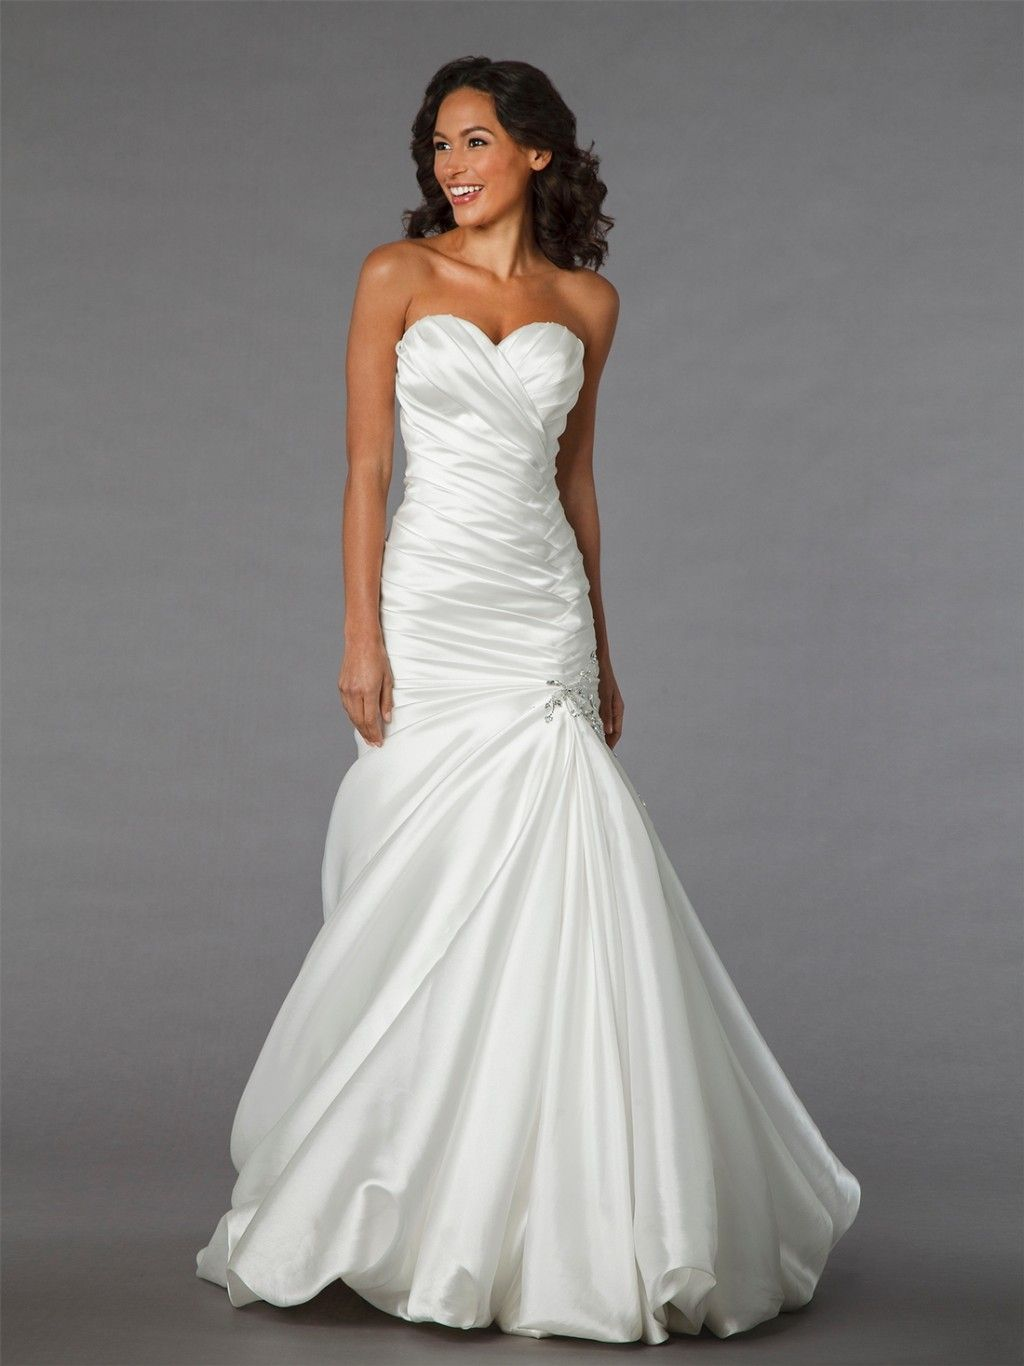 Wedding dresses kleinfeld  Bridal Mermaid Wedding Dress  Wedding Dresses  Pinterest  Mermaid